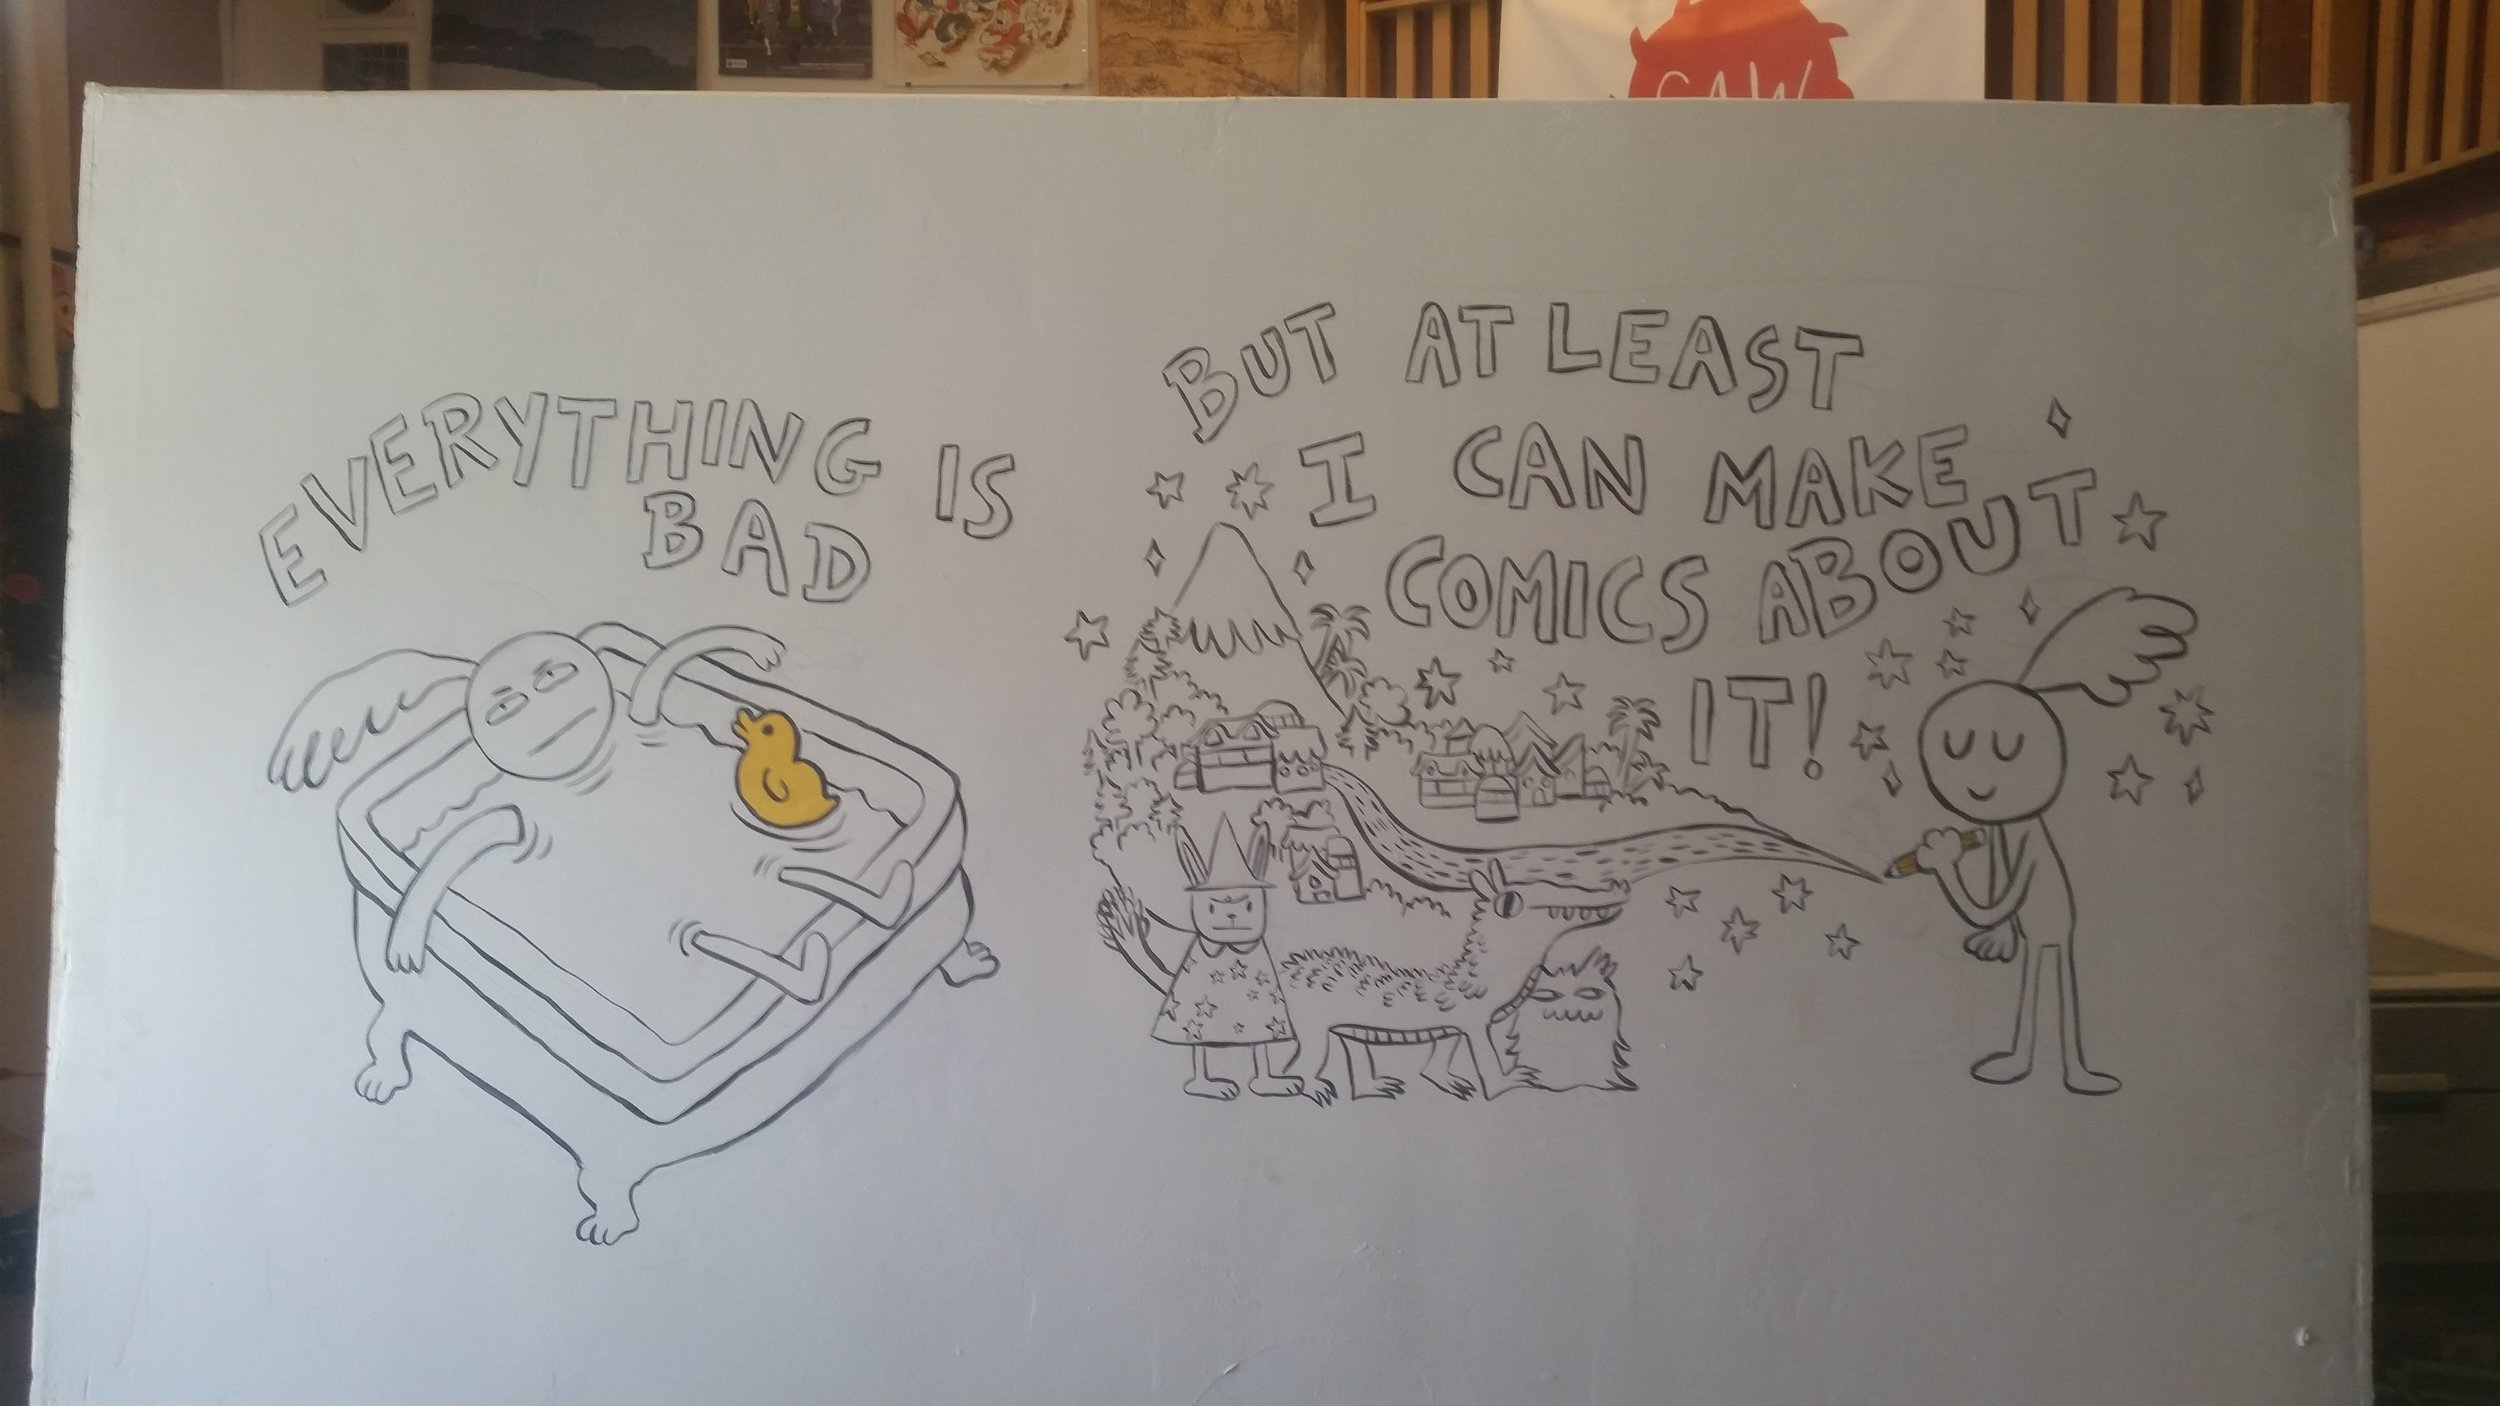 Past student, Miranda Harmon, 'Everything is Bad, But at Least I Can Make Comics About It'.